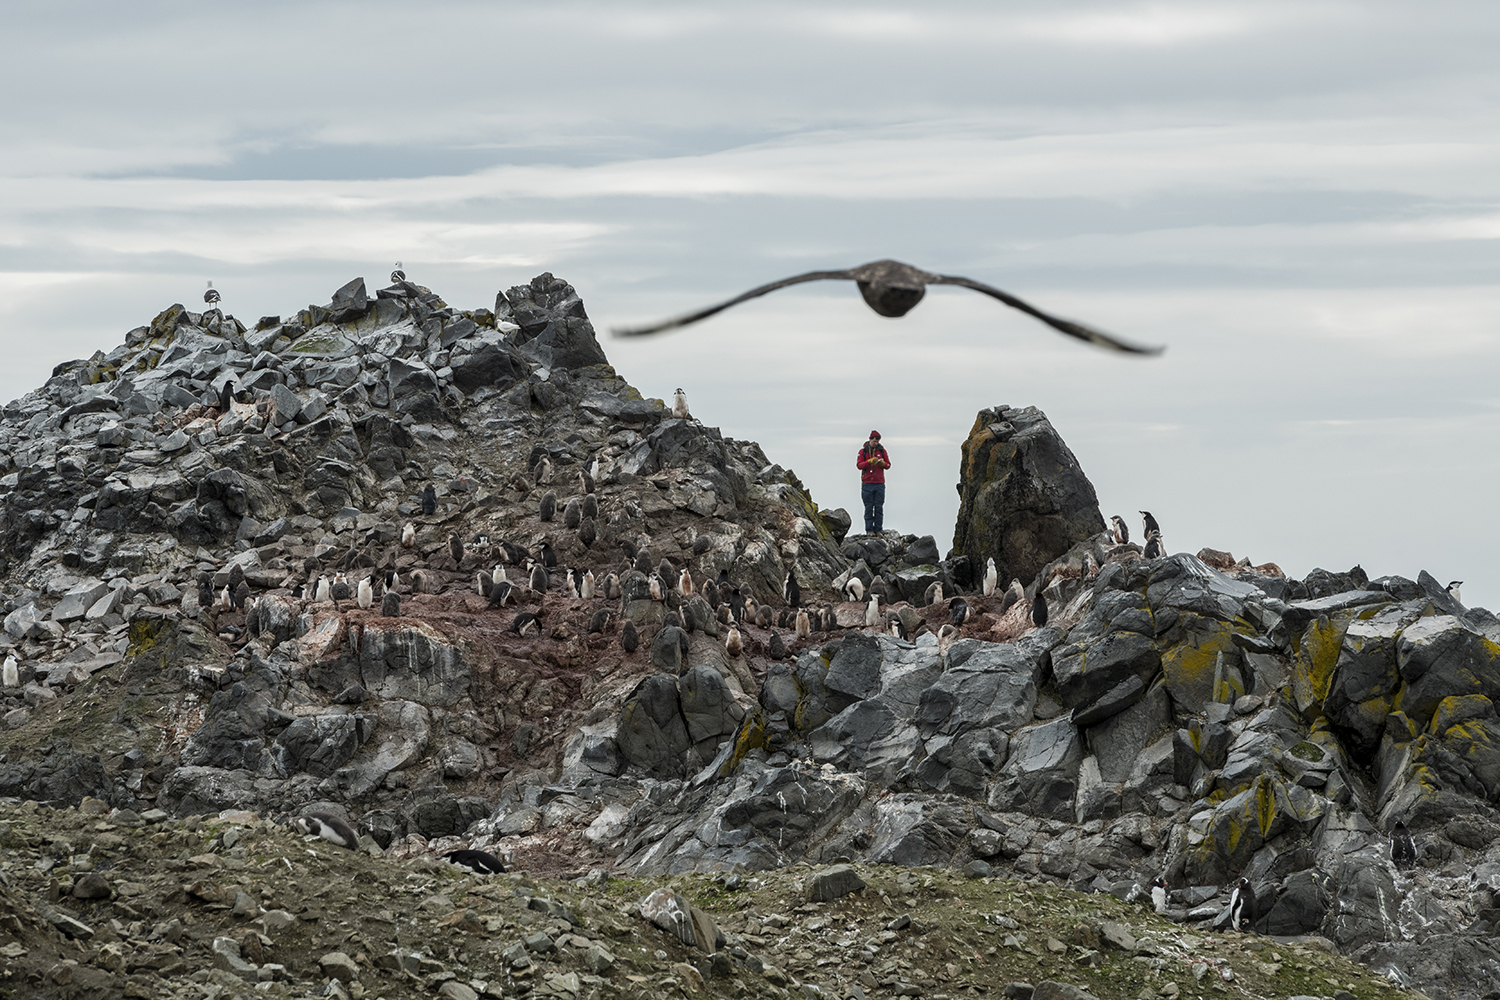 A skua flying over a chinstrap colony on Snow Island, South Shetlands, Antarctica.Alex Borowicz, population ecologist from Stony Brook University counting penguin populations in Antarctica.